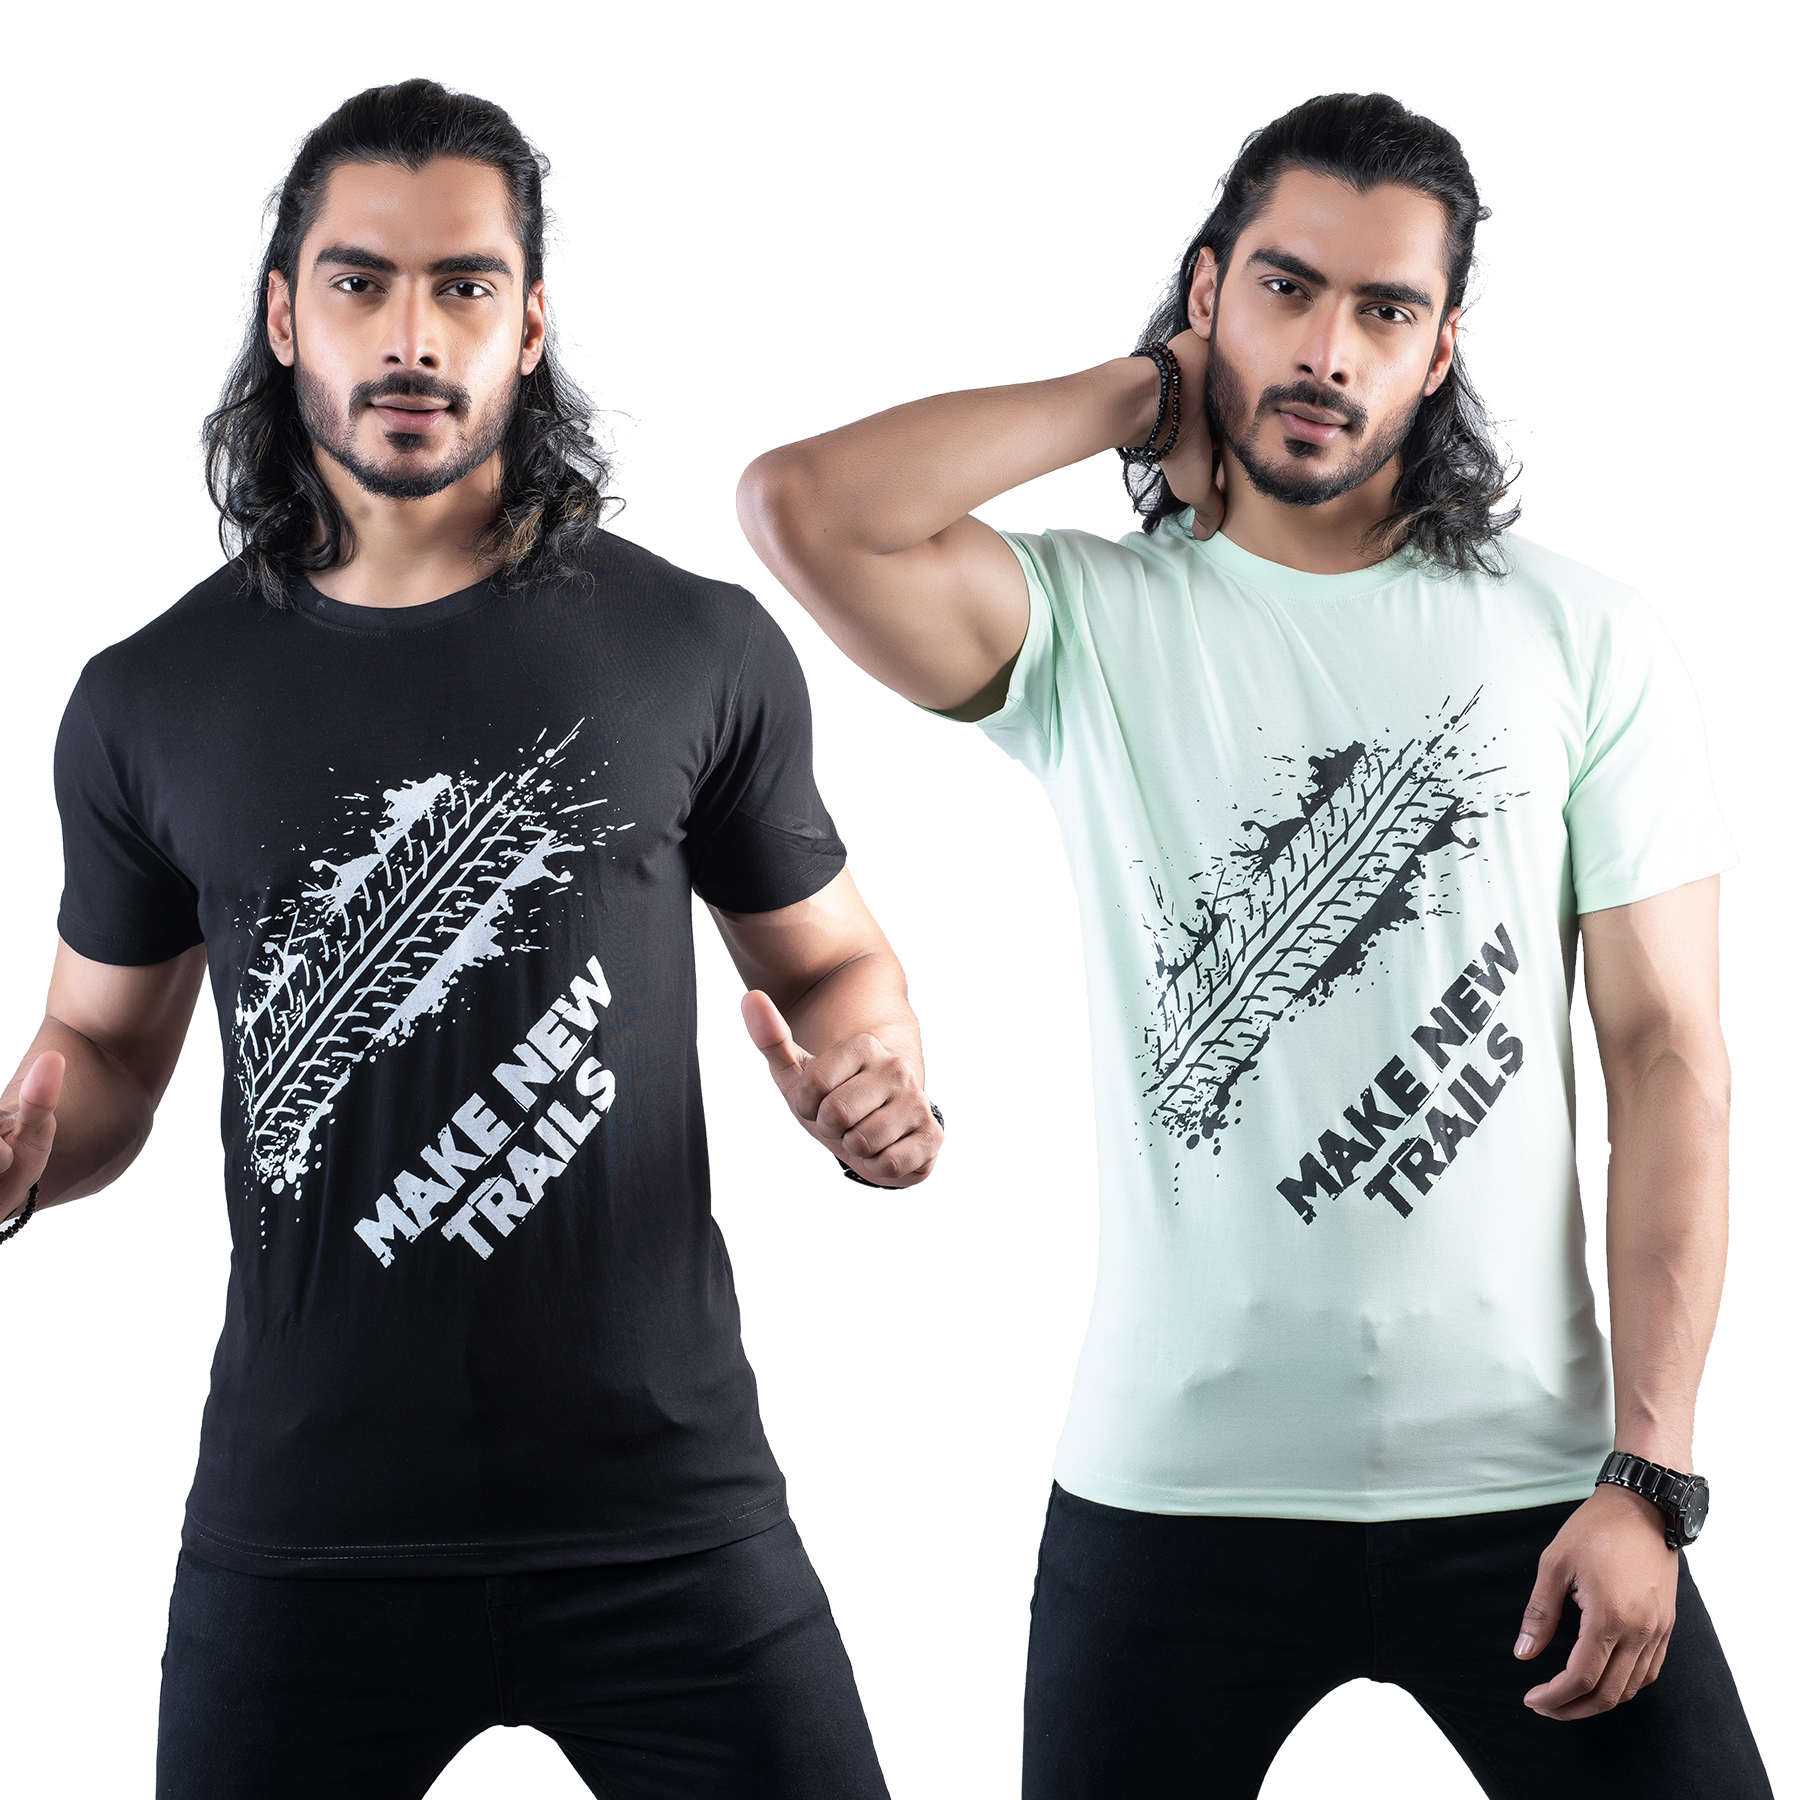 Tuedd Men's Half Sleeves Round Neck Regular Fit Premium Cotton 2 Units Combo Printed Black And Mint Green T-Shirts(Pack of 2)